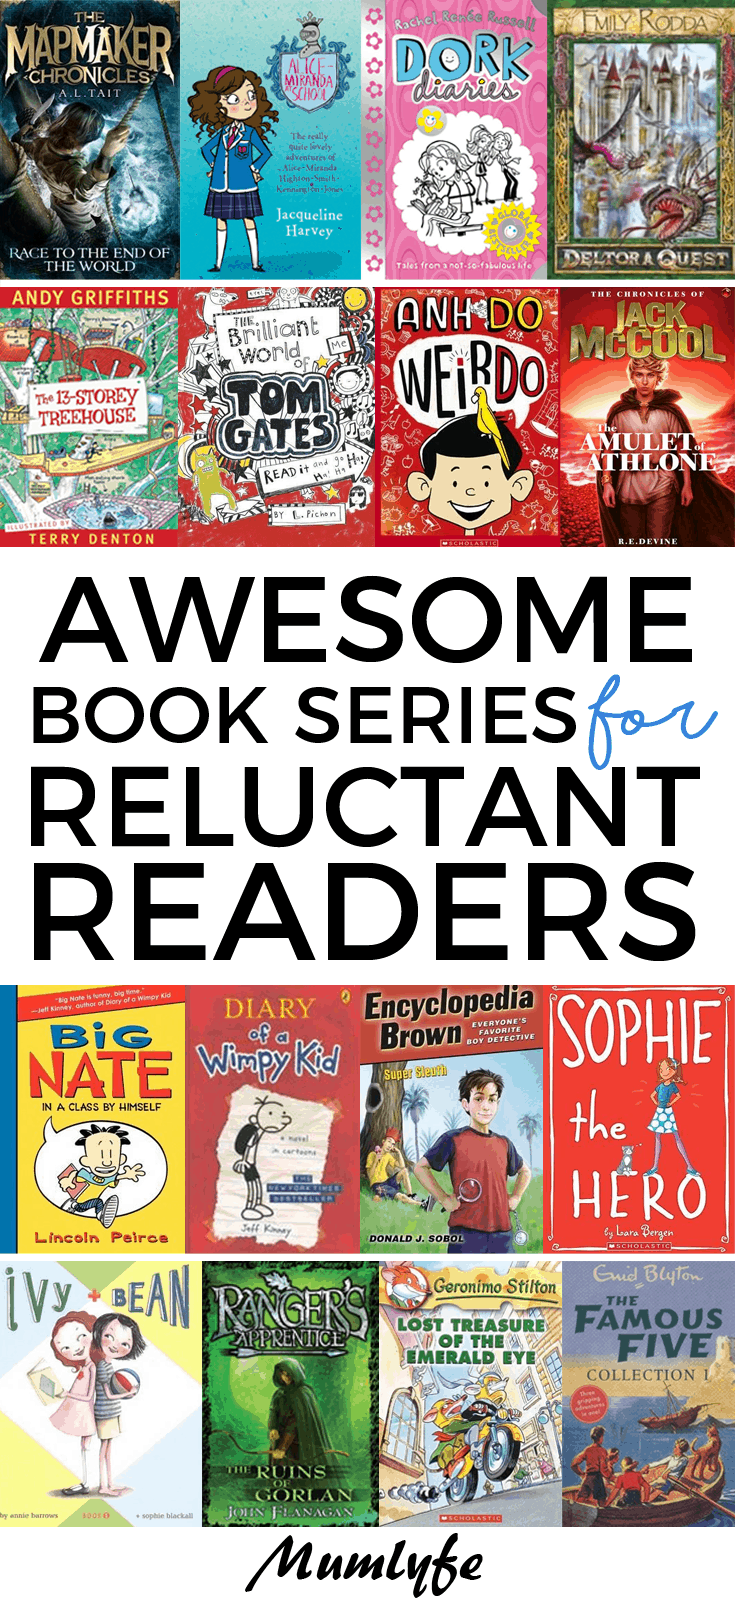 17 awesome book series for reluctant readers